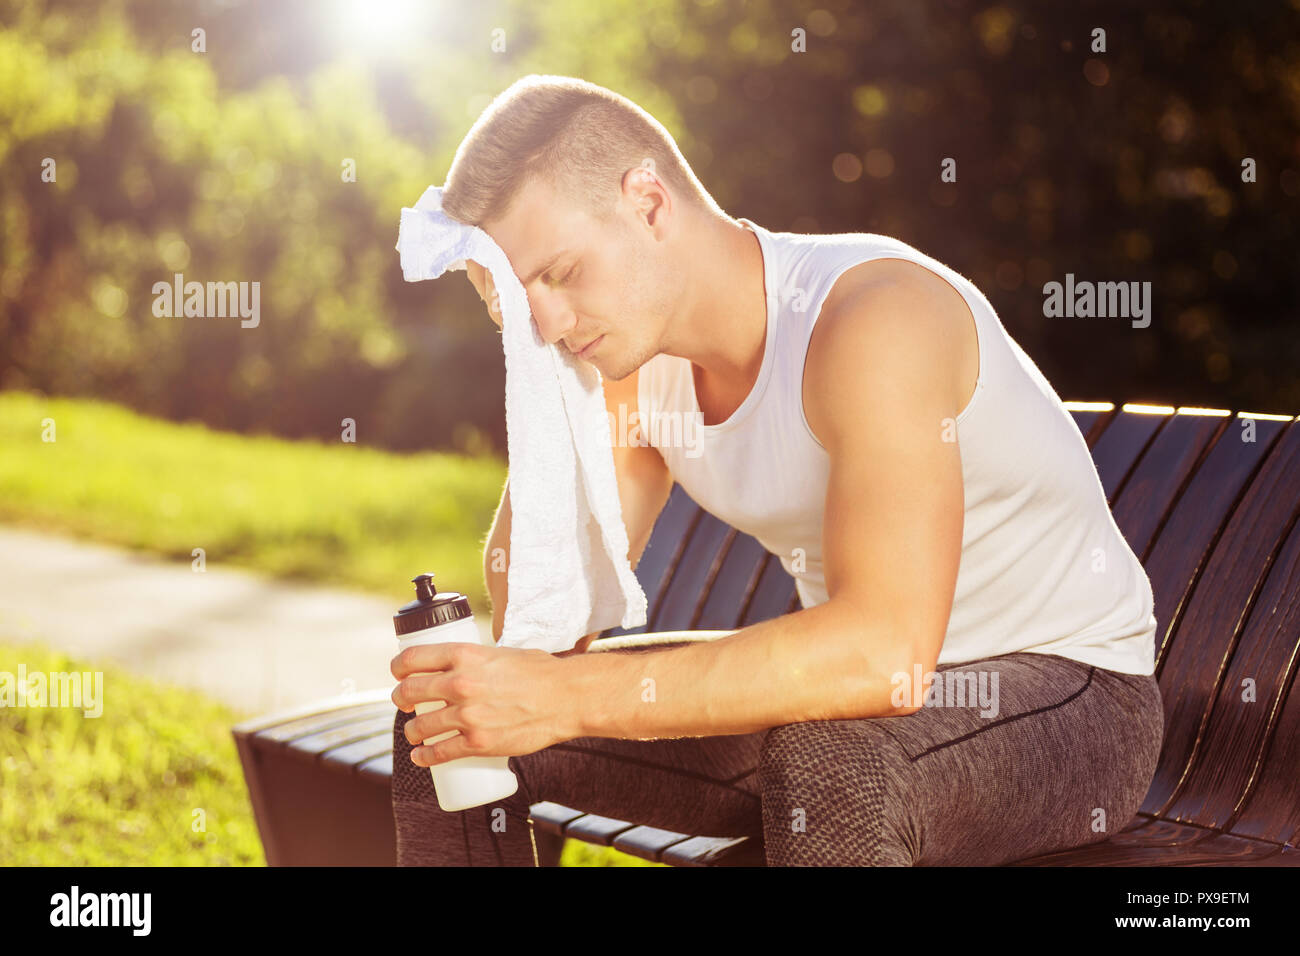 Exhausted man after exercise drinking water and wiping sweat with towel. - Stock Image